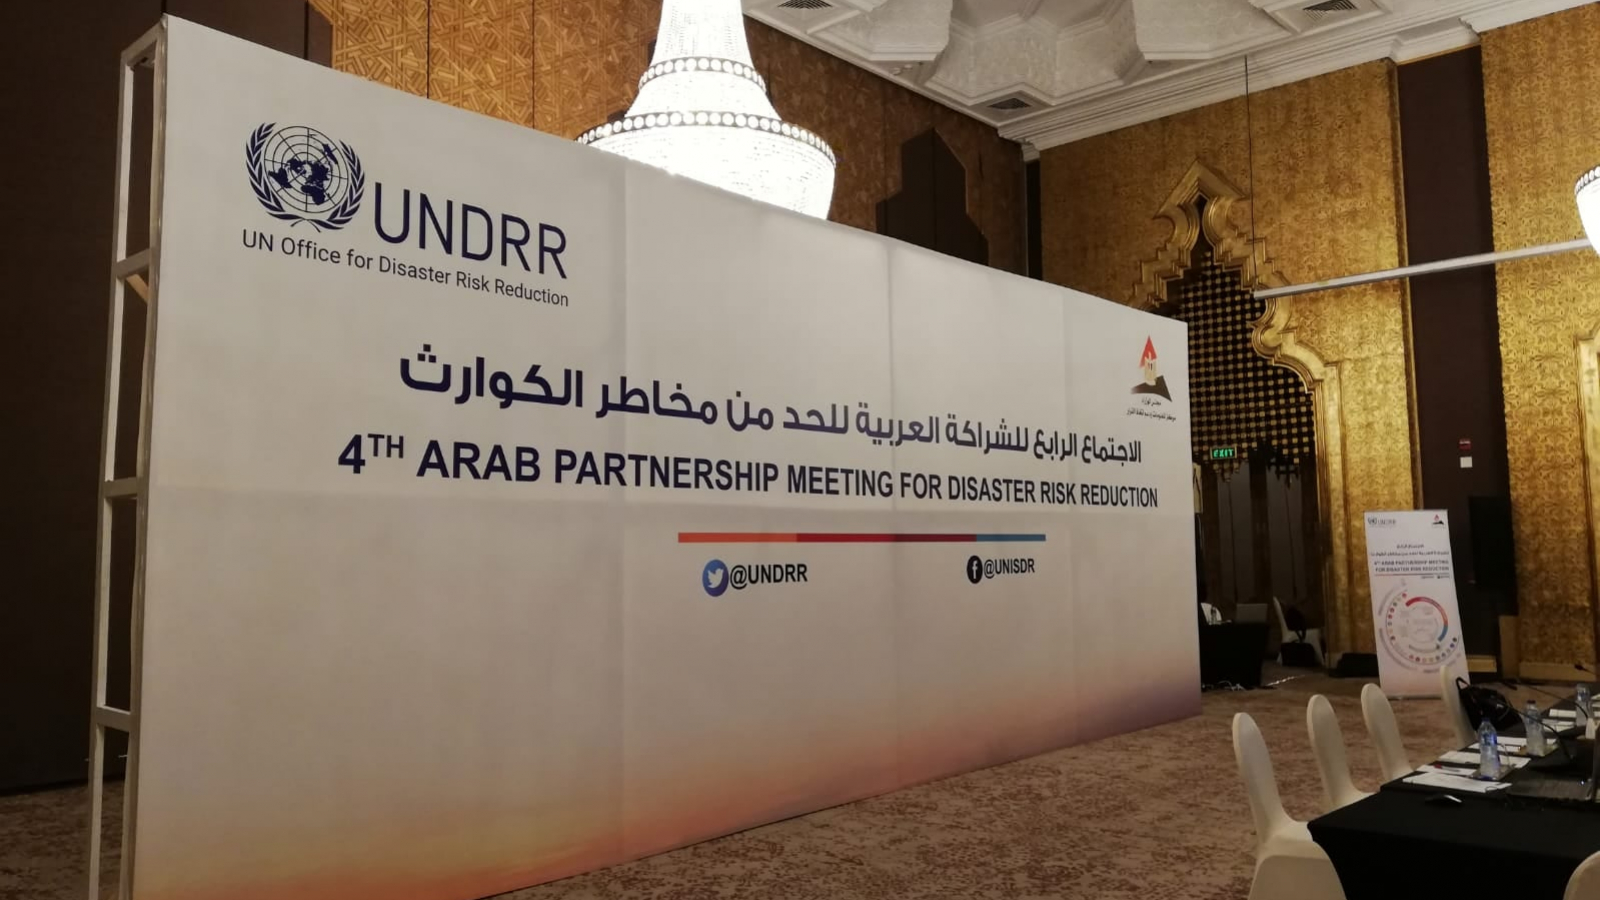 EU-funded project takes part in Arab partnership meeting for disaster risk reduction